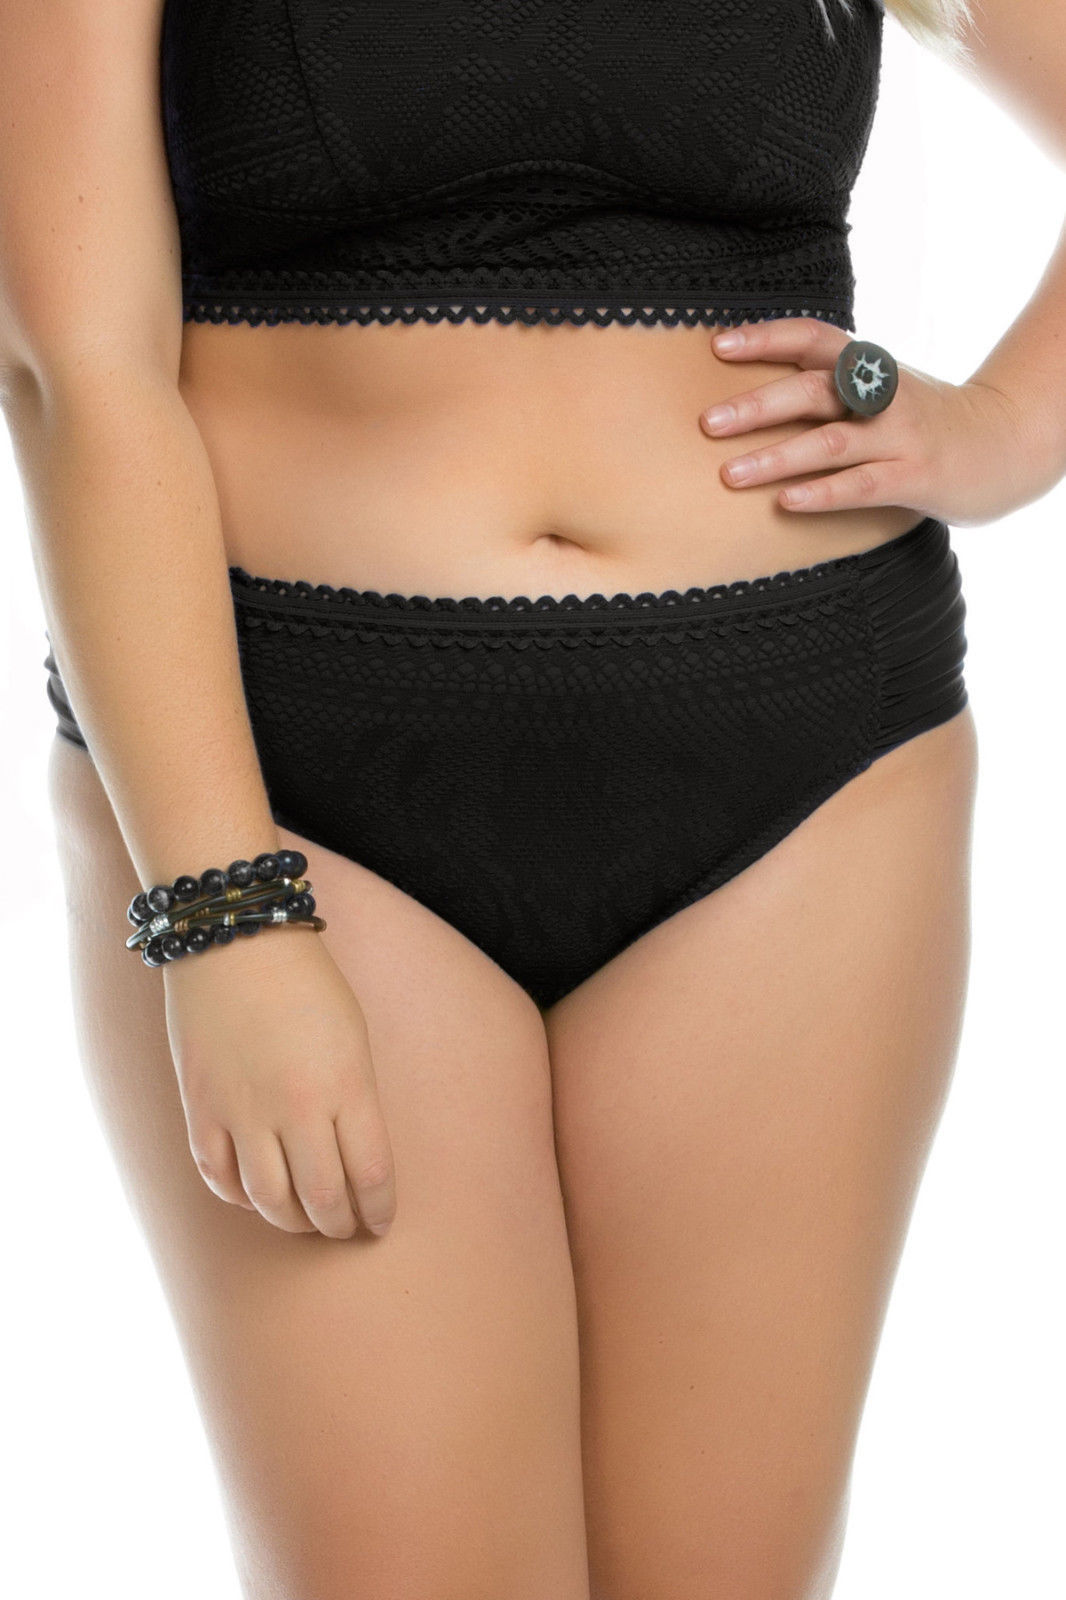 Primary image for  NEW BECCA Black Crocheted Ruched Tab Sides Plus Size Bikini Bottom 1X 16-18